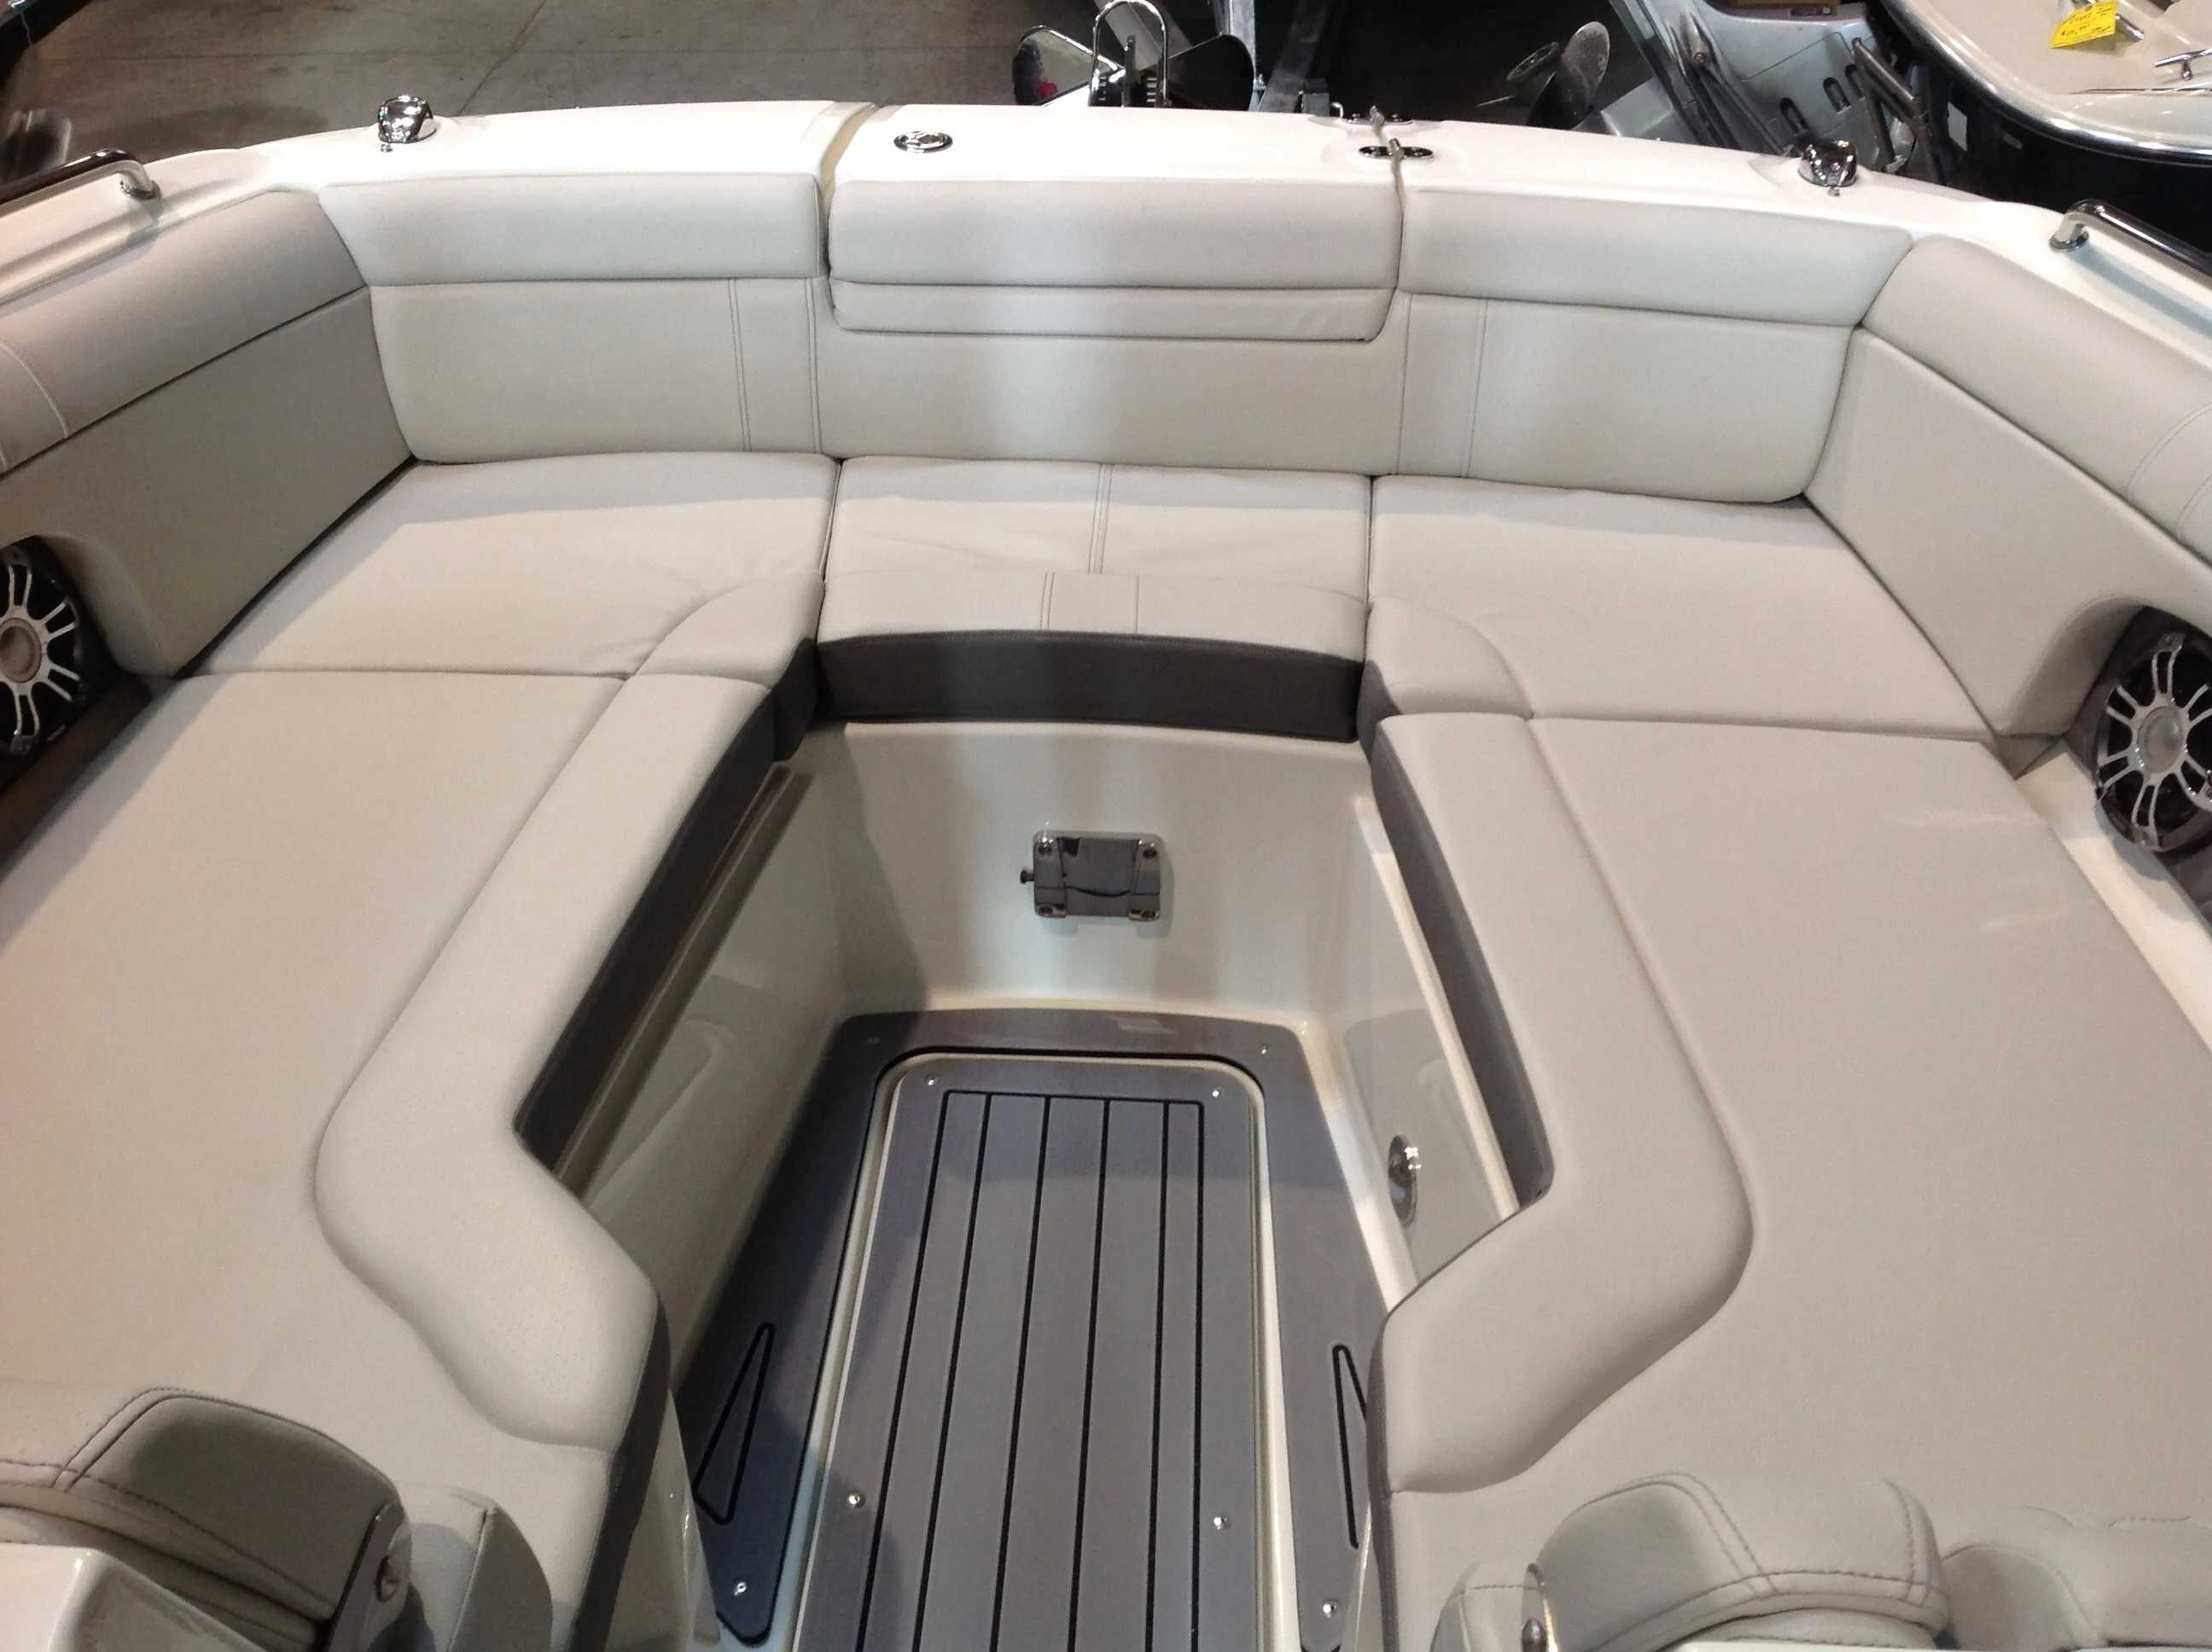 2021 Sea Ray boat for sale, model of the boat is 270 SDX & Image # 6 of 21